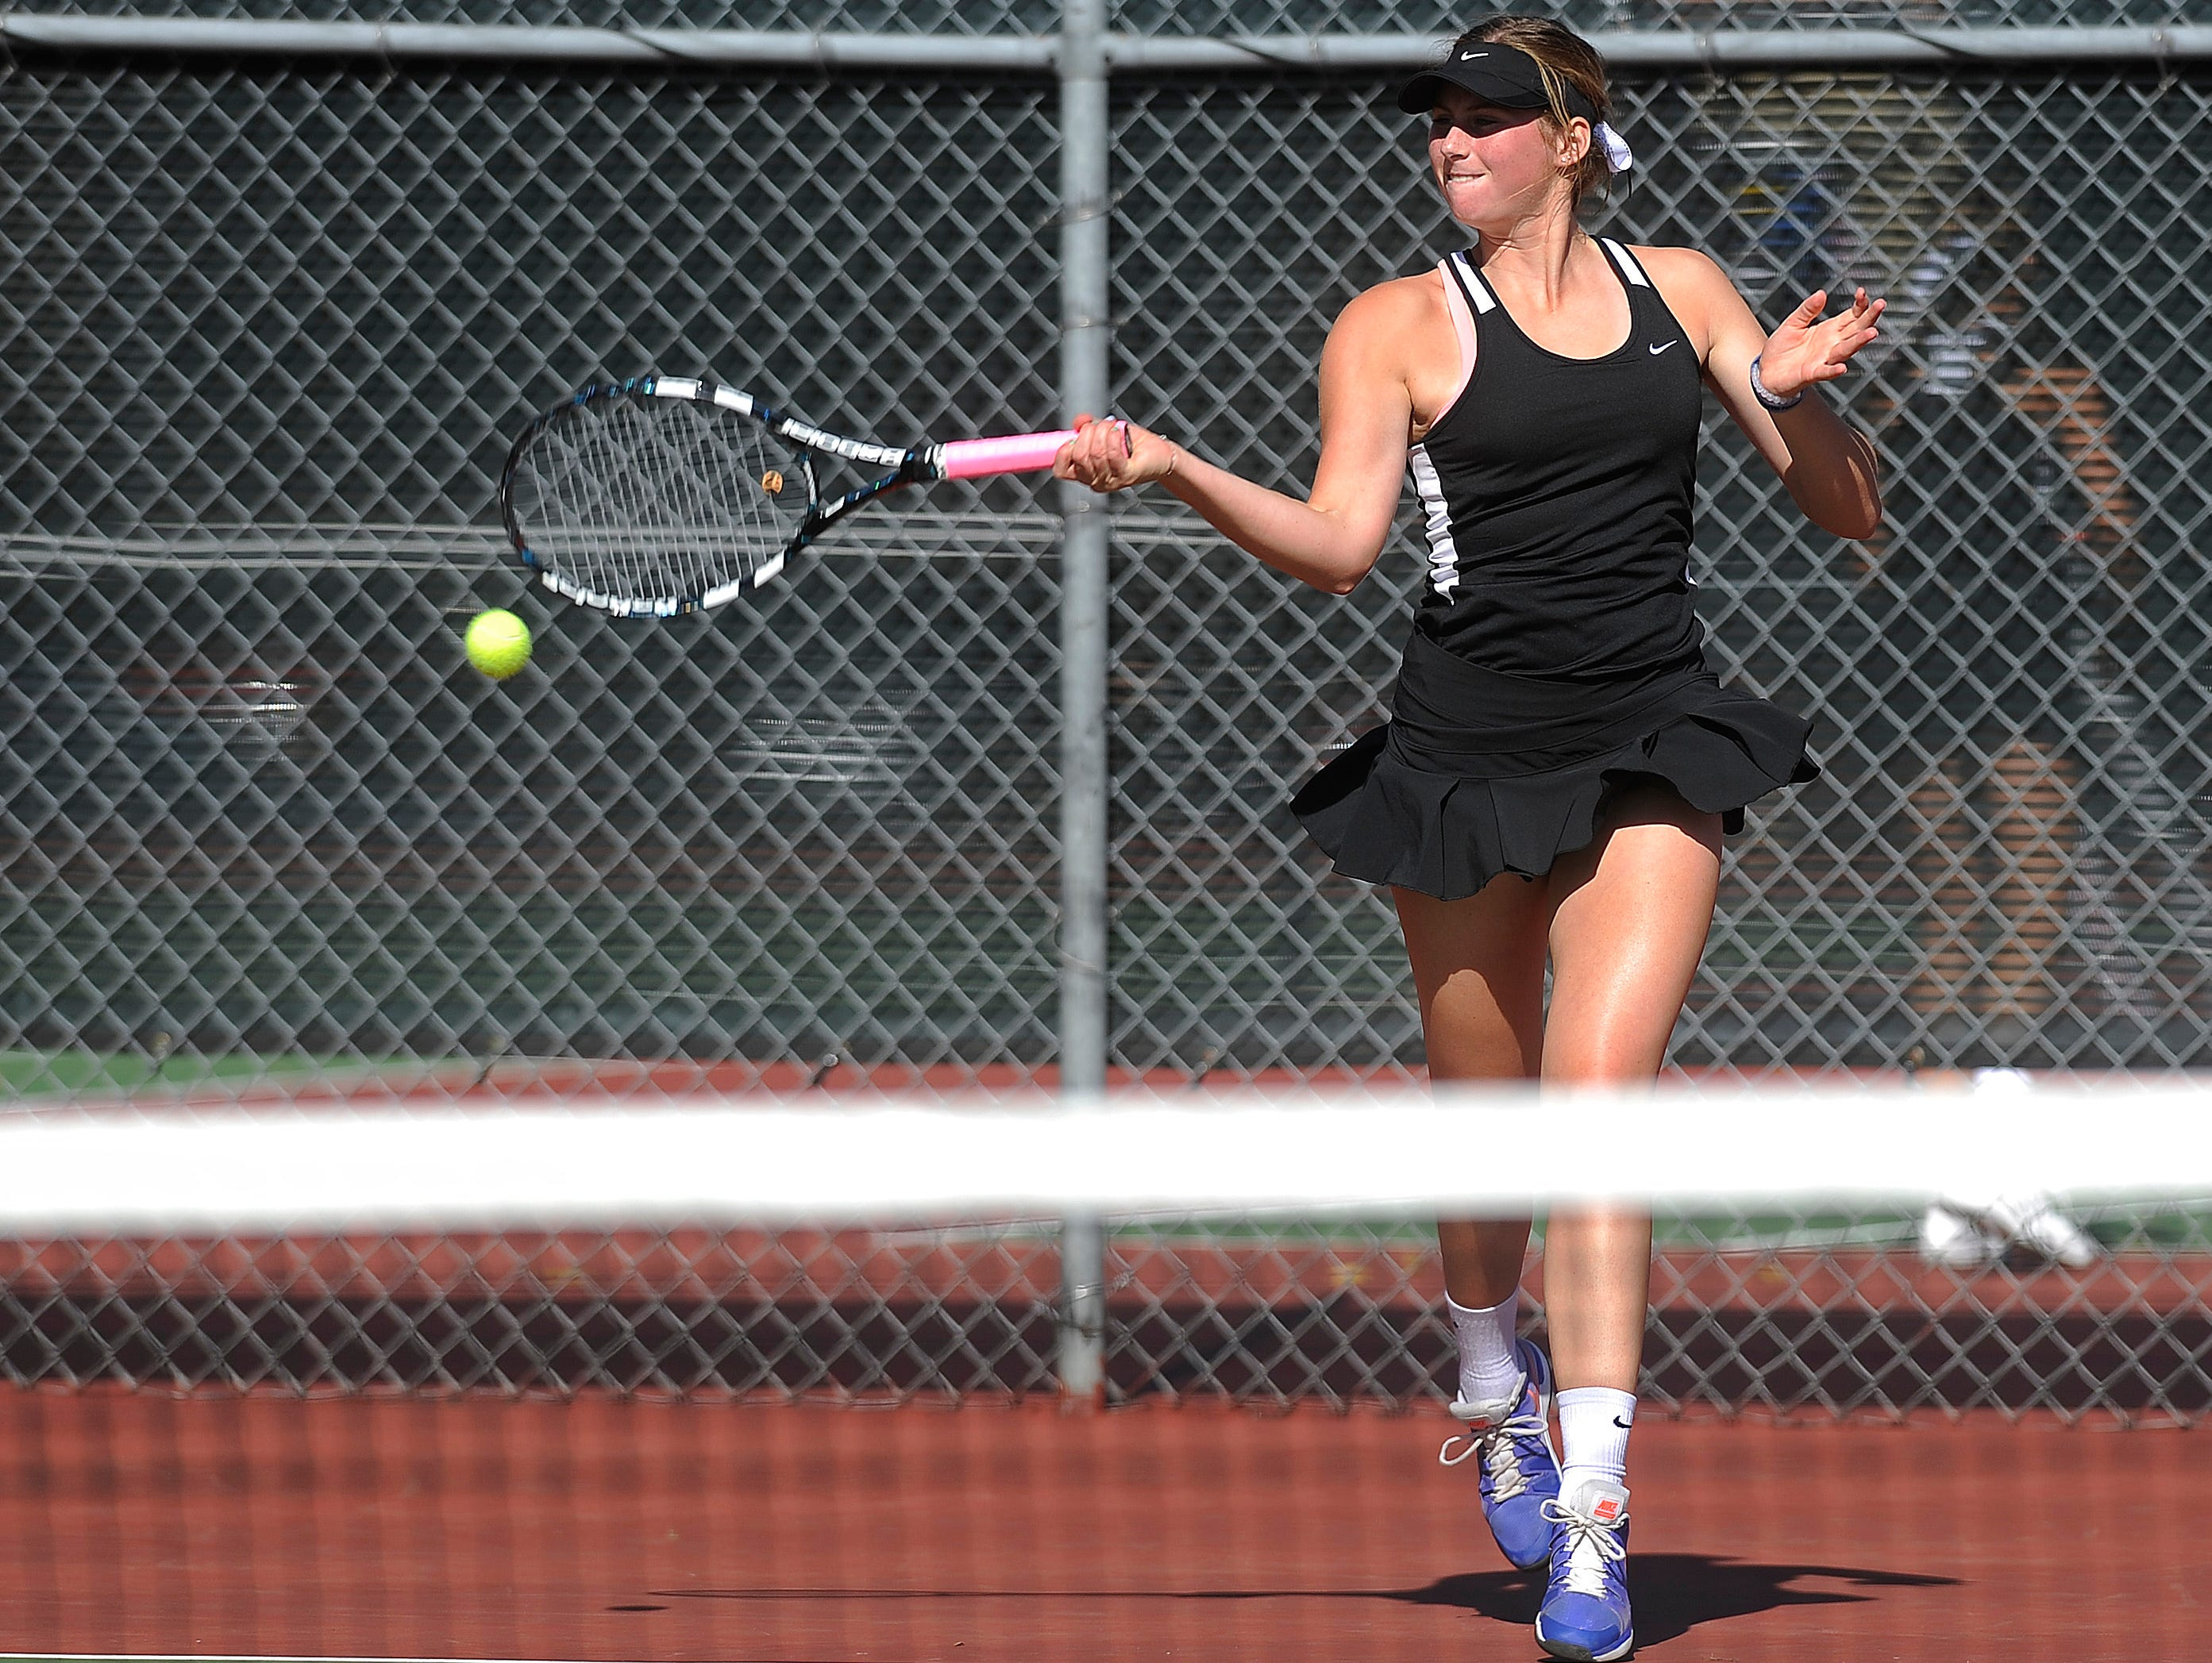 St. Thomas More's Grace Goble returns the ball to O'Gorman's Samantha Czarnecki during the singles championship finals of the SD high school girls state tennis tournament at McKennan Park in Sioux Falls, SD; Saturday, Oct. 10, 2015.